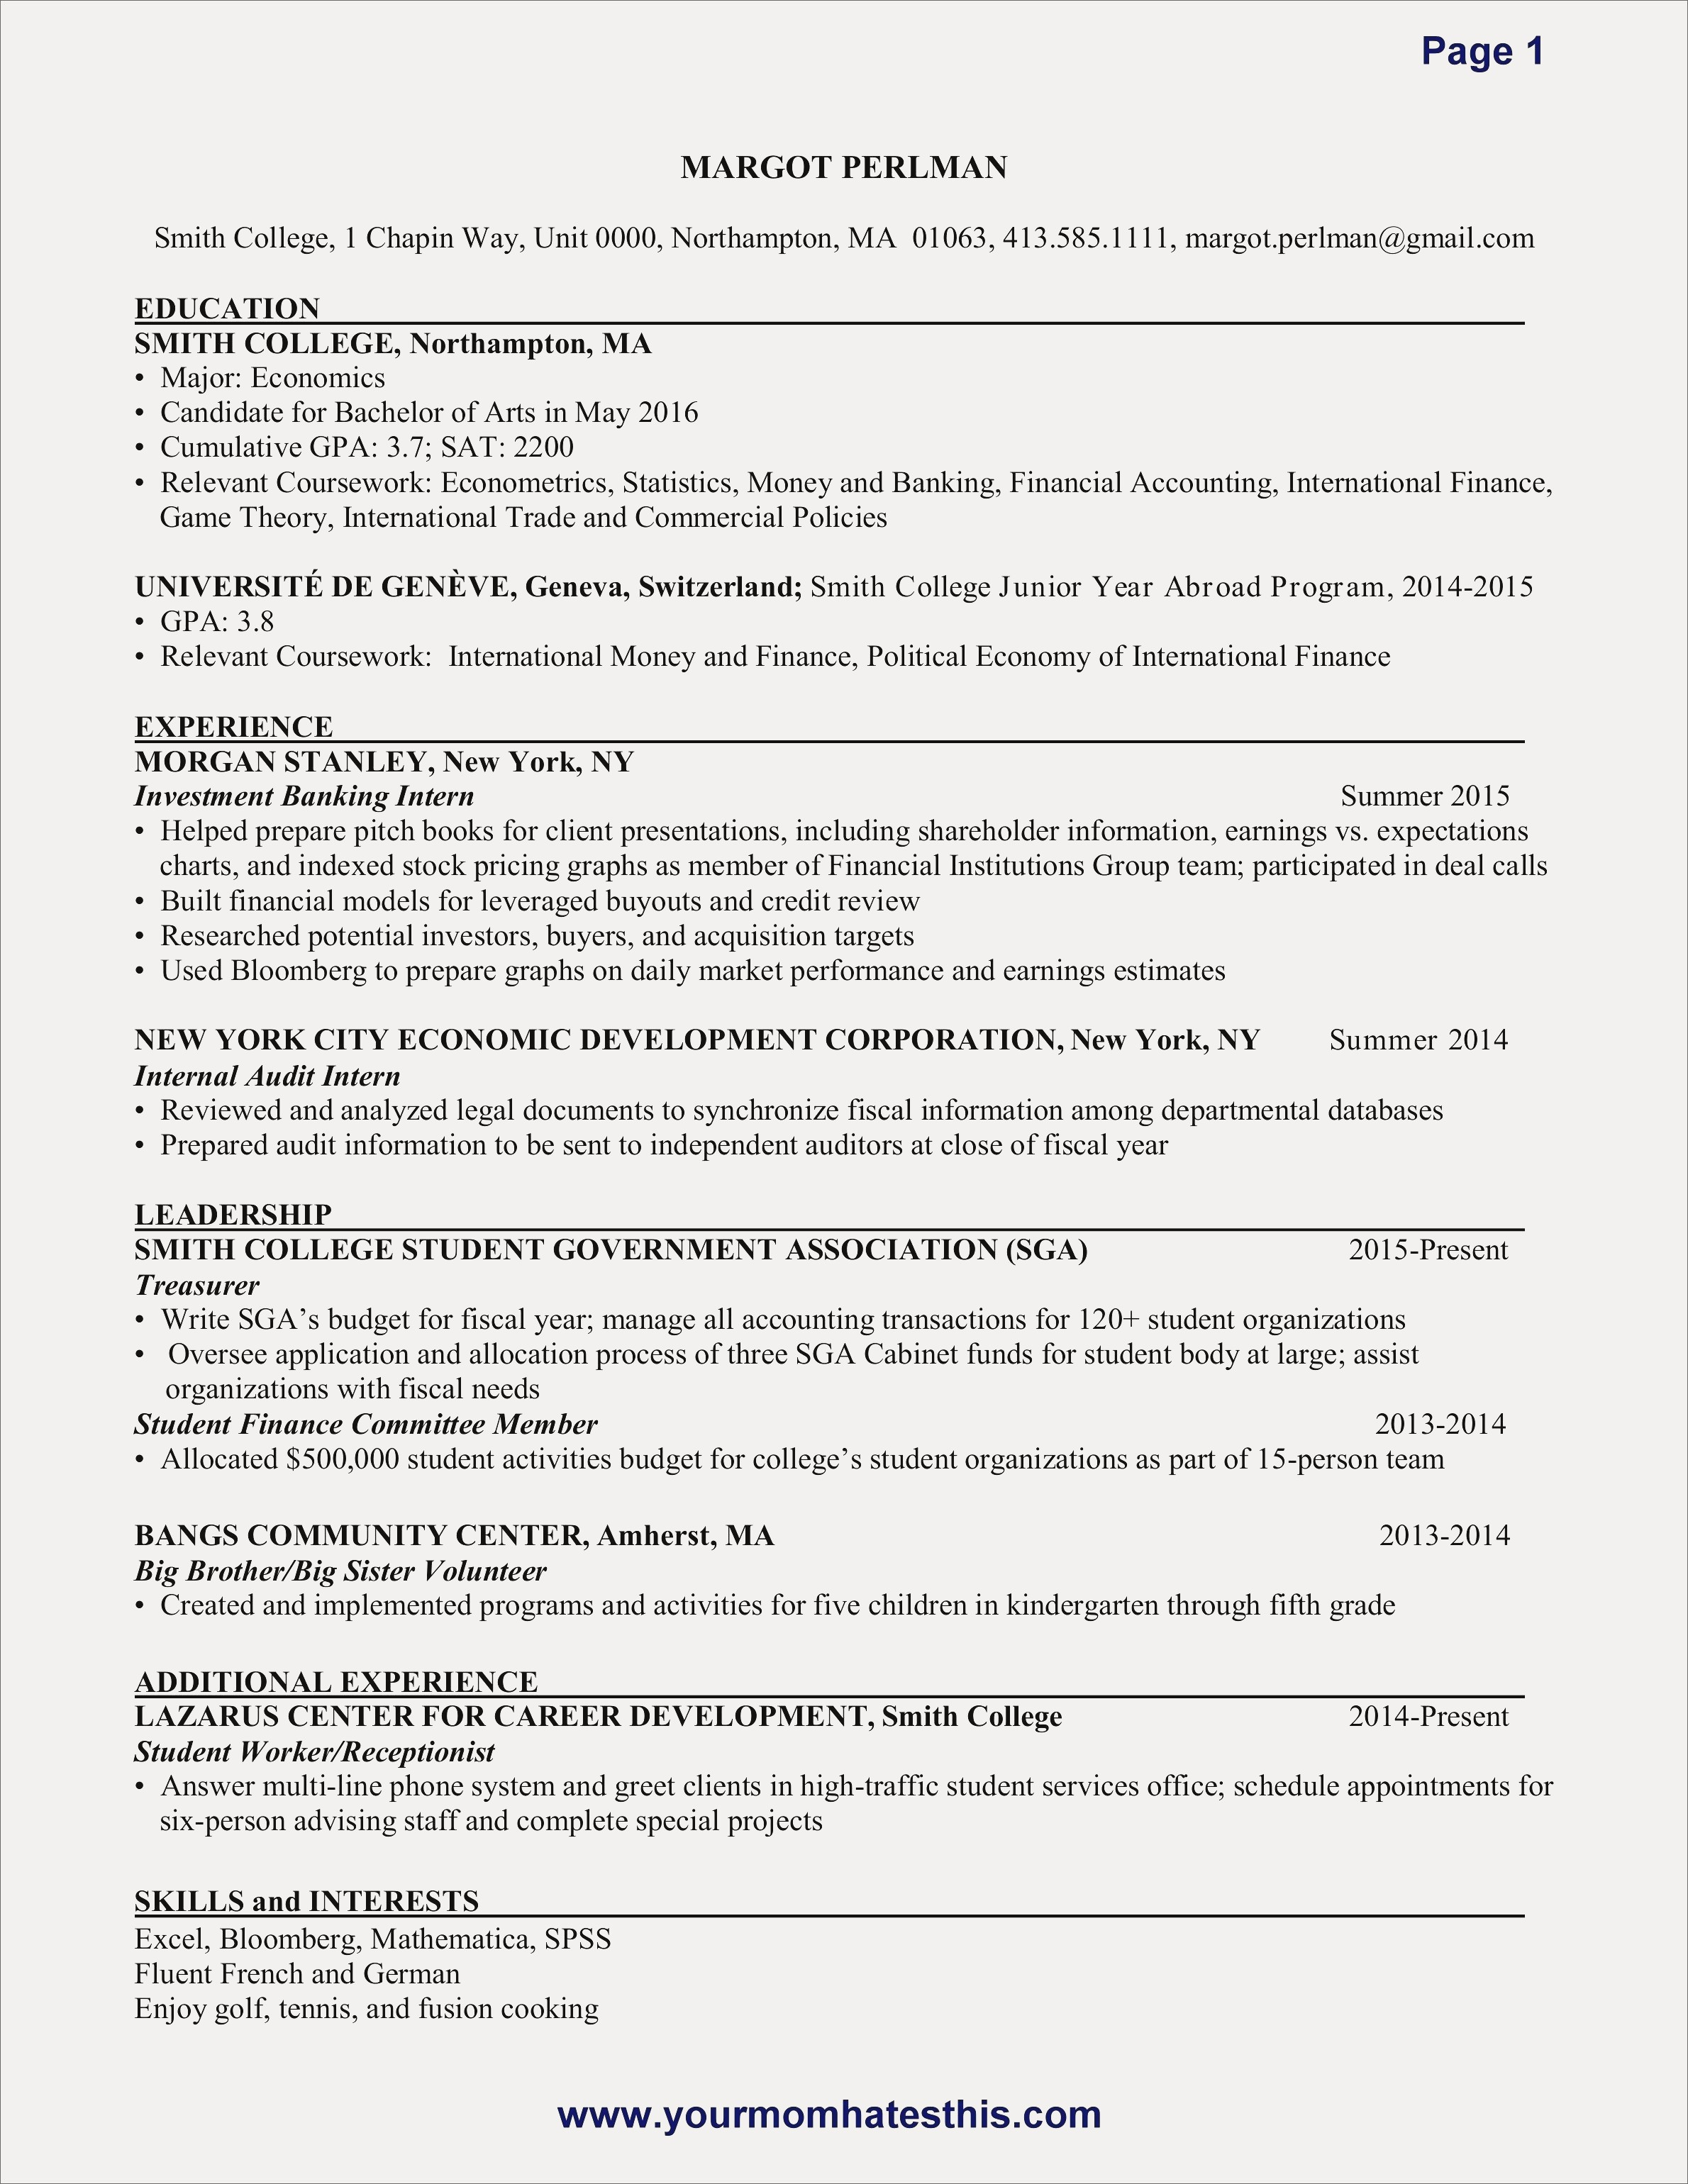 Volunteer Experience On Resume - Resume Sample Experience New New New Resume Sample Best Resume Cover